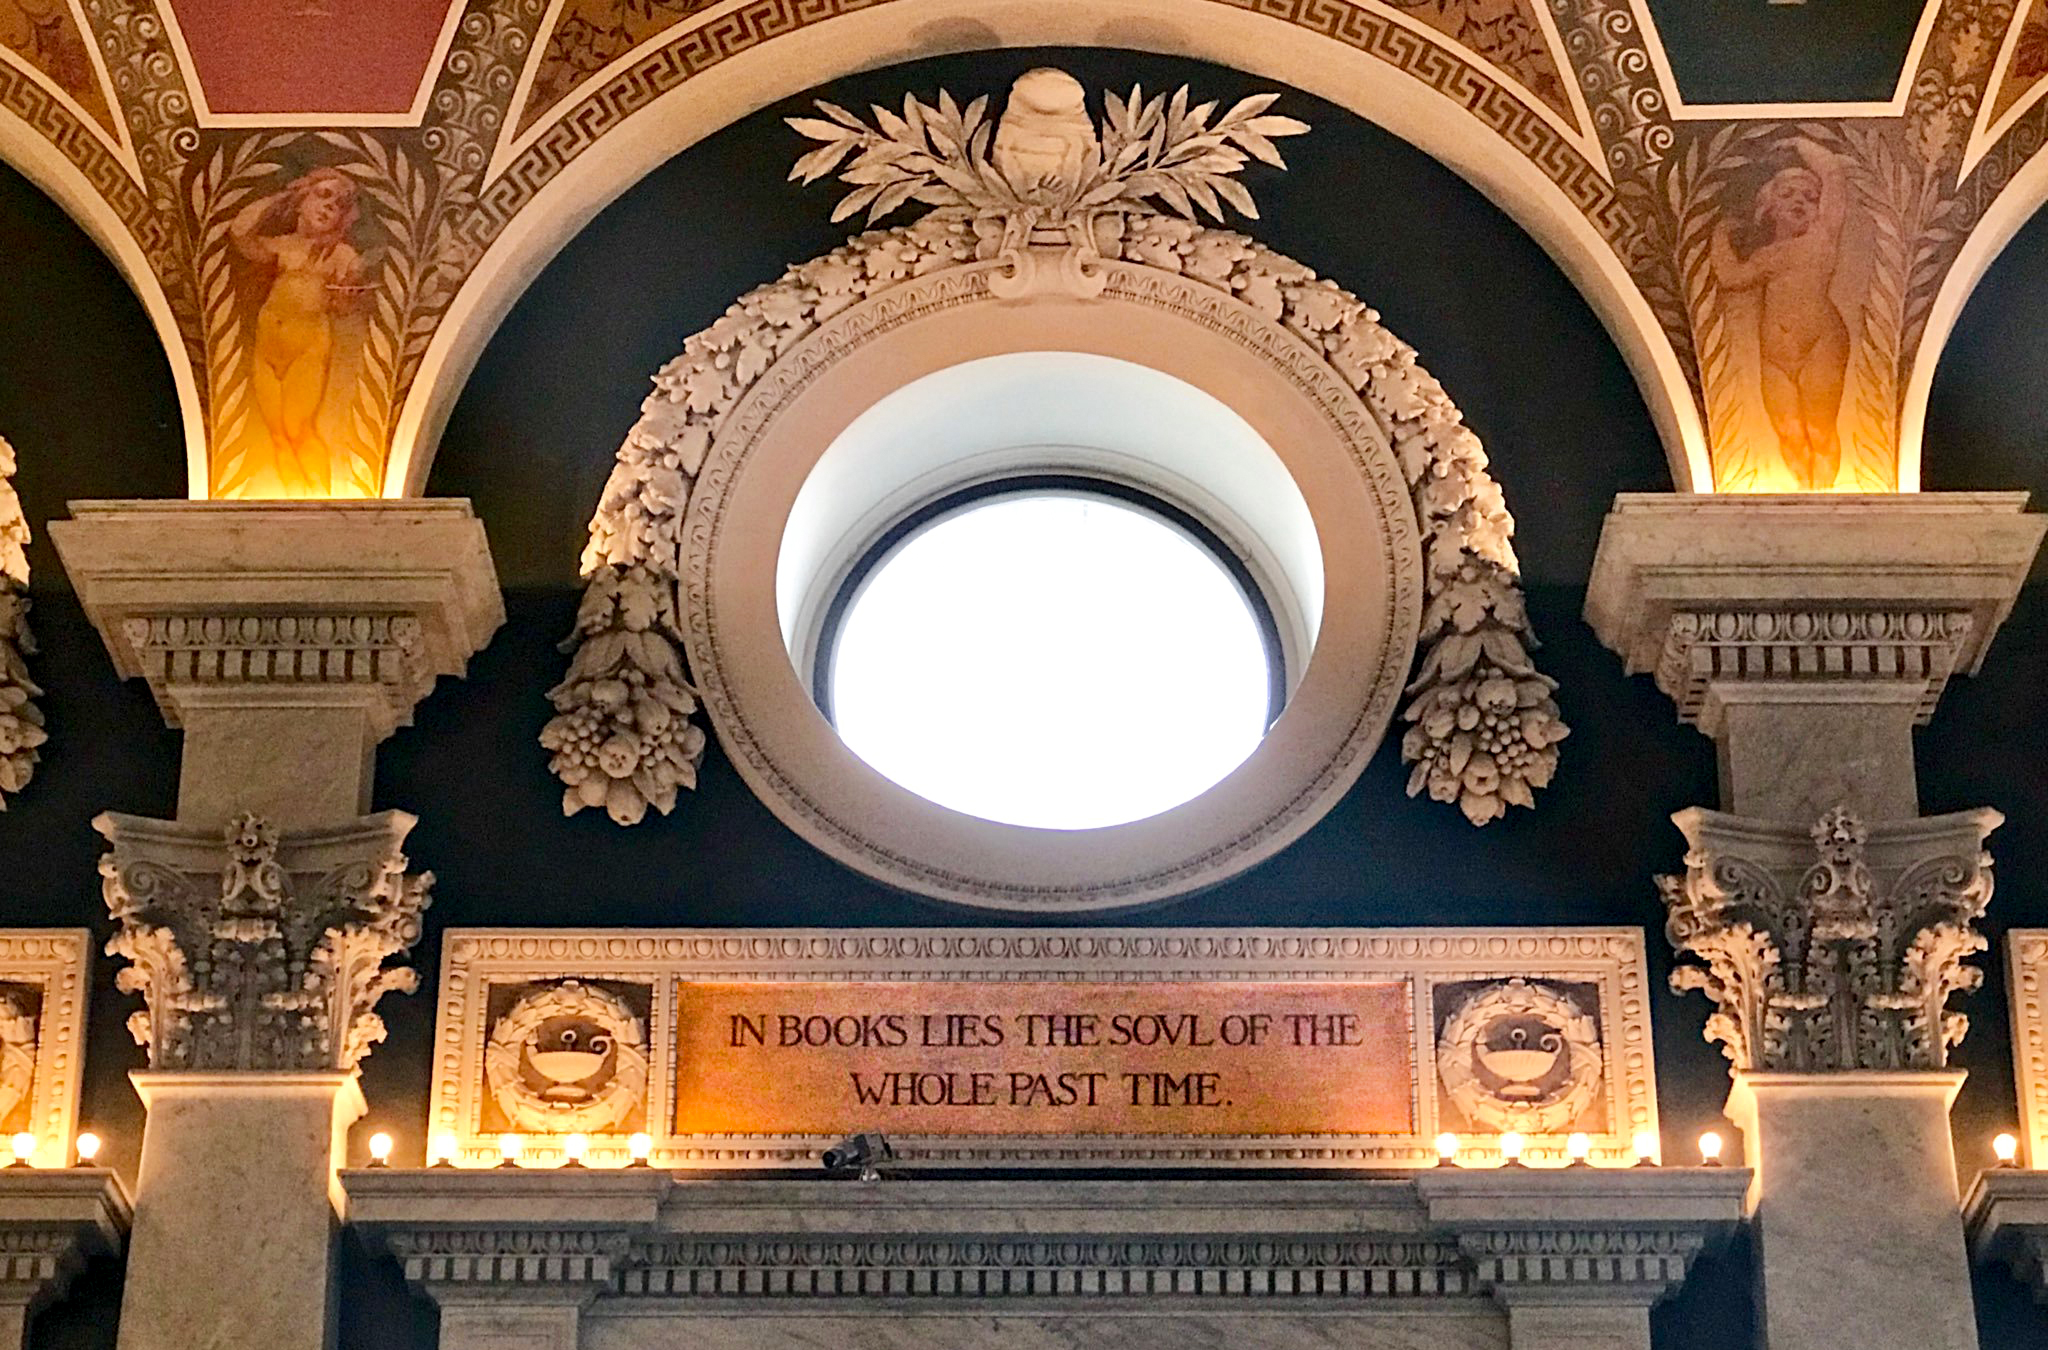 """During a weekend trip to our nation's capital, I escaped the oppressive heat in the Library of Congress and found inspiration at every turn. The next line of this quote from Thomas Carlyle reads: """"the articulate audible voice of the past."""" Indeed."""